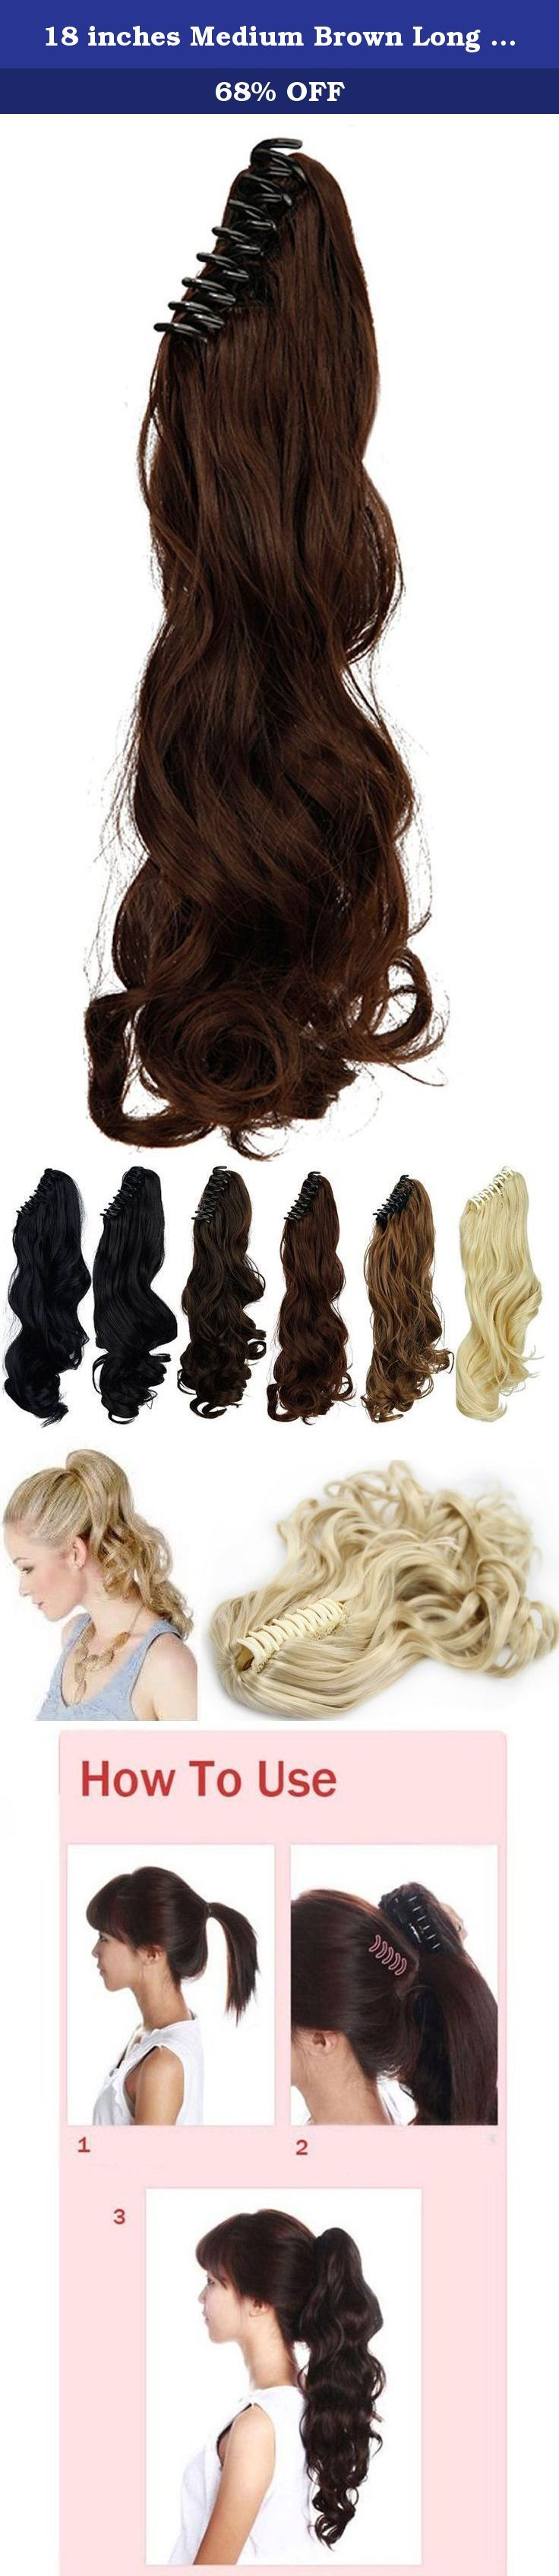 18 inches Medium Brown Long Wave Claw Clip on Ponytail Hair Extensions Hairpiece Pony Tail Extension for Girl Lady Women. This is a one piece claw clip on ponytail hair extensions made from premium synthetic fibres, lovely style. The claw is easy to use, and can secure hold the item to your hair. You can fit them yourself in the mirror, and have them in and a new style ready to go in minutes. This item is ideal for changing your look to your current style. Colors: Many Colors available. (...